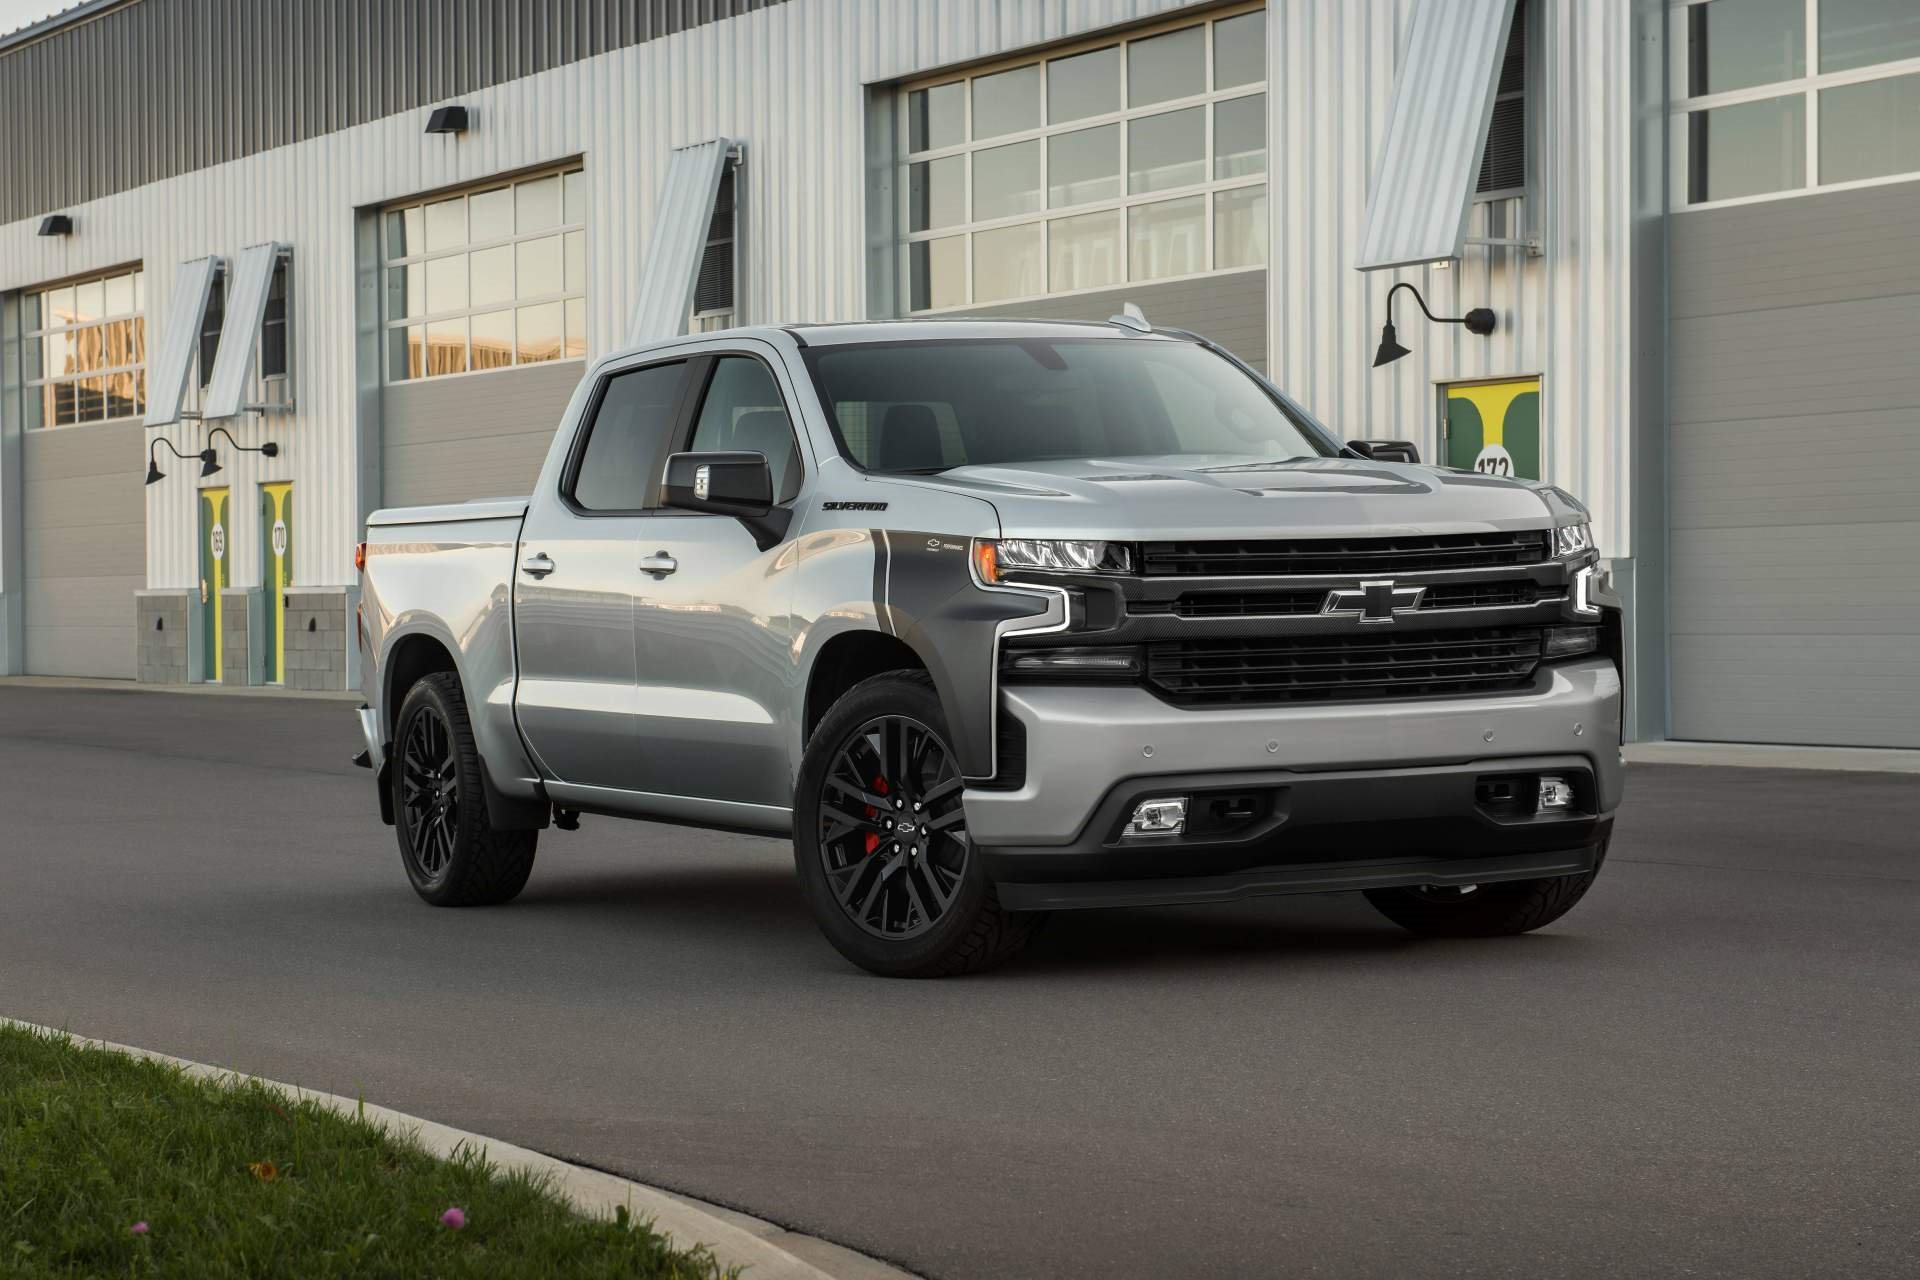 New 2019 Chevrolet-Silverado 1500 LT Silverado 1500 LT for sale $42,600 at M and V Leasing in Brooklyn NY 11223 1